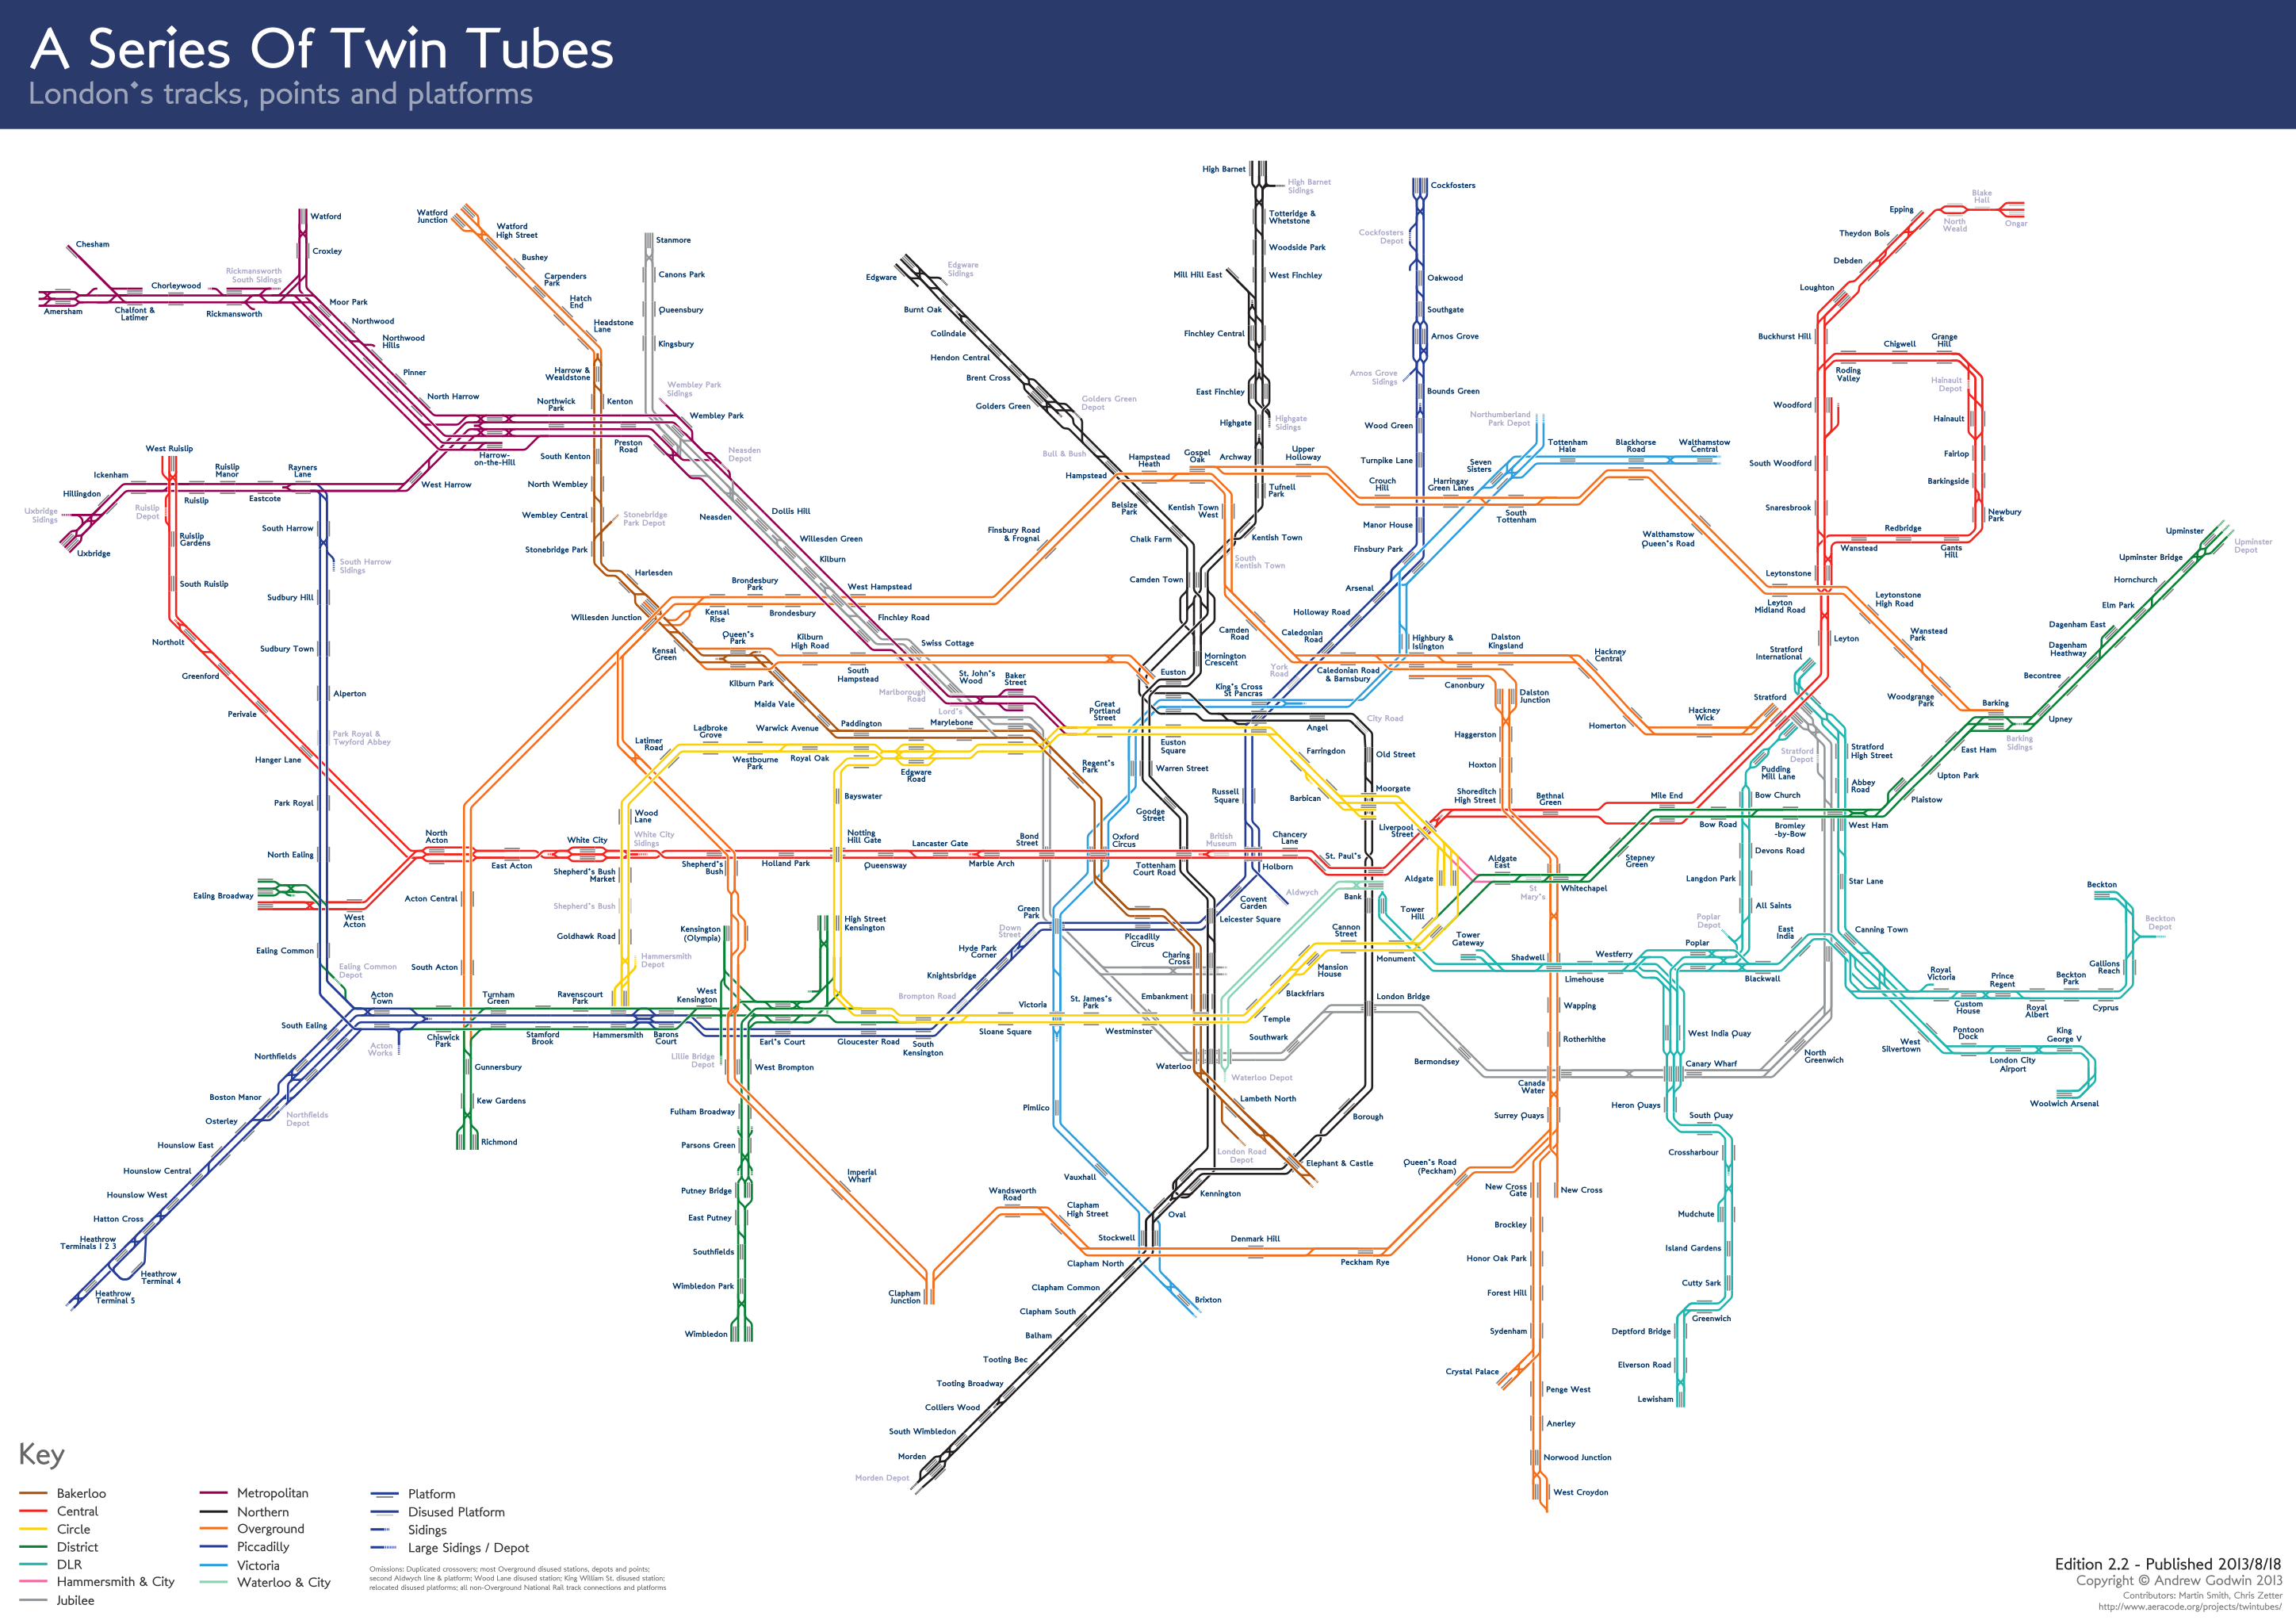 a series of twin tubes map